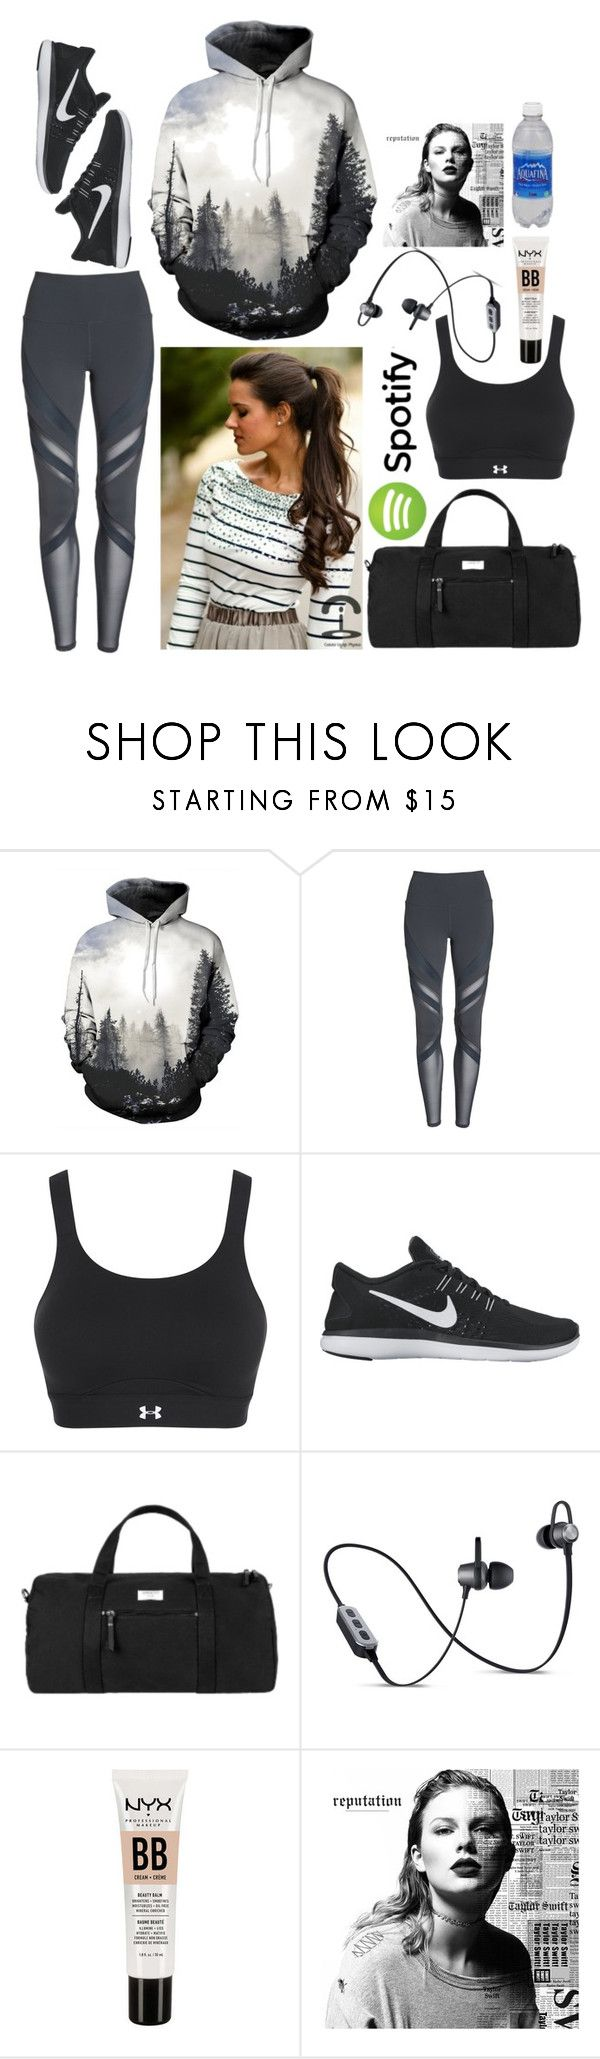 """""""Stephanie: August 28, 2017"""" by disneyfreaks39 ❤ liked on Polyvore featuring Alo, Under Armour, NIKE, Parasol and Merkury"""